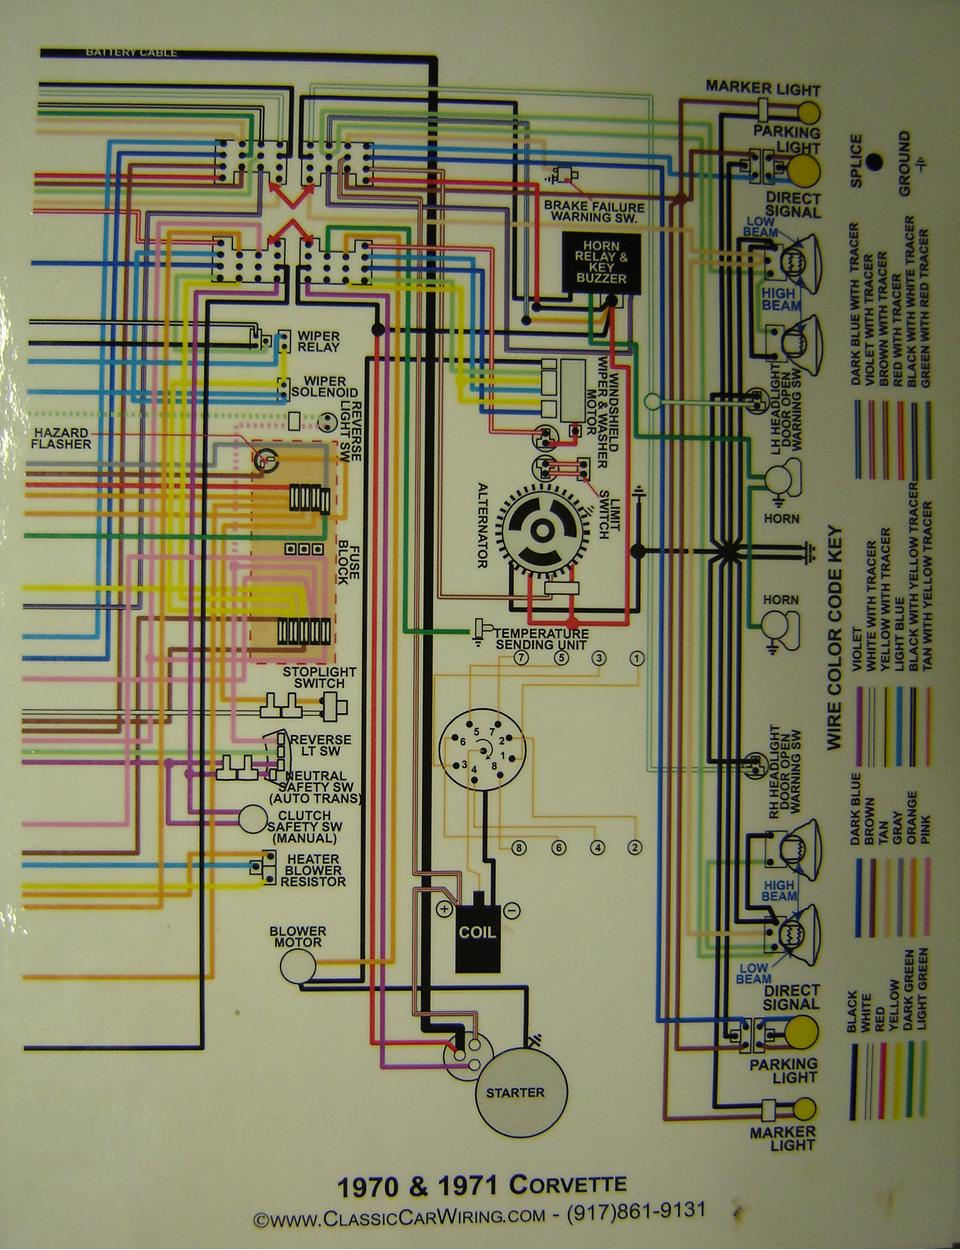 1970 71 corvette color wiring diagram B chevy diagrams corvette wiring harness at aneh.co